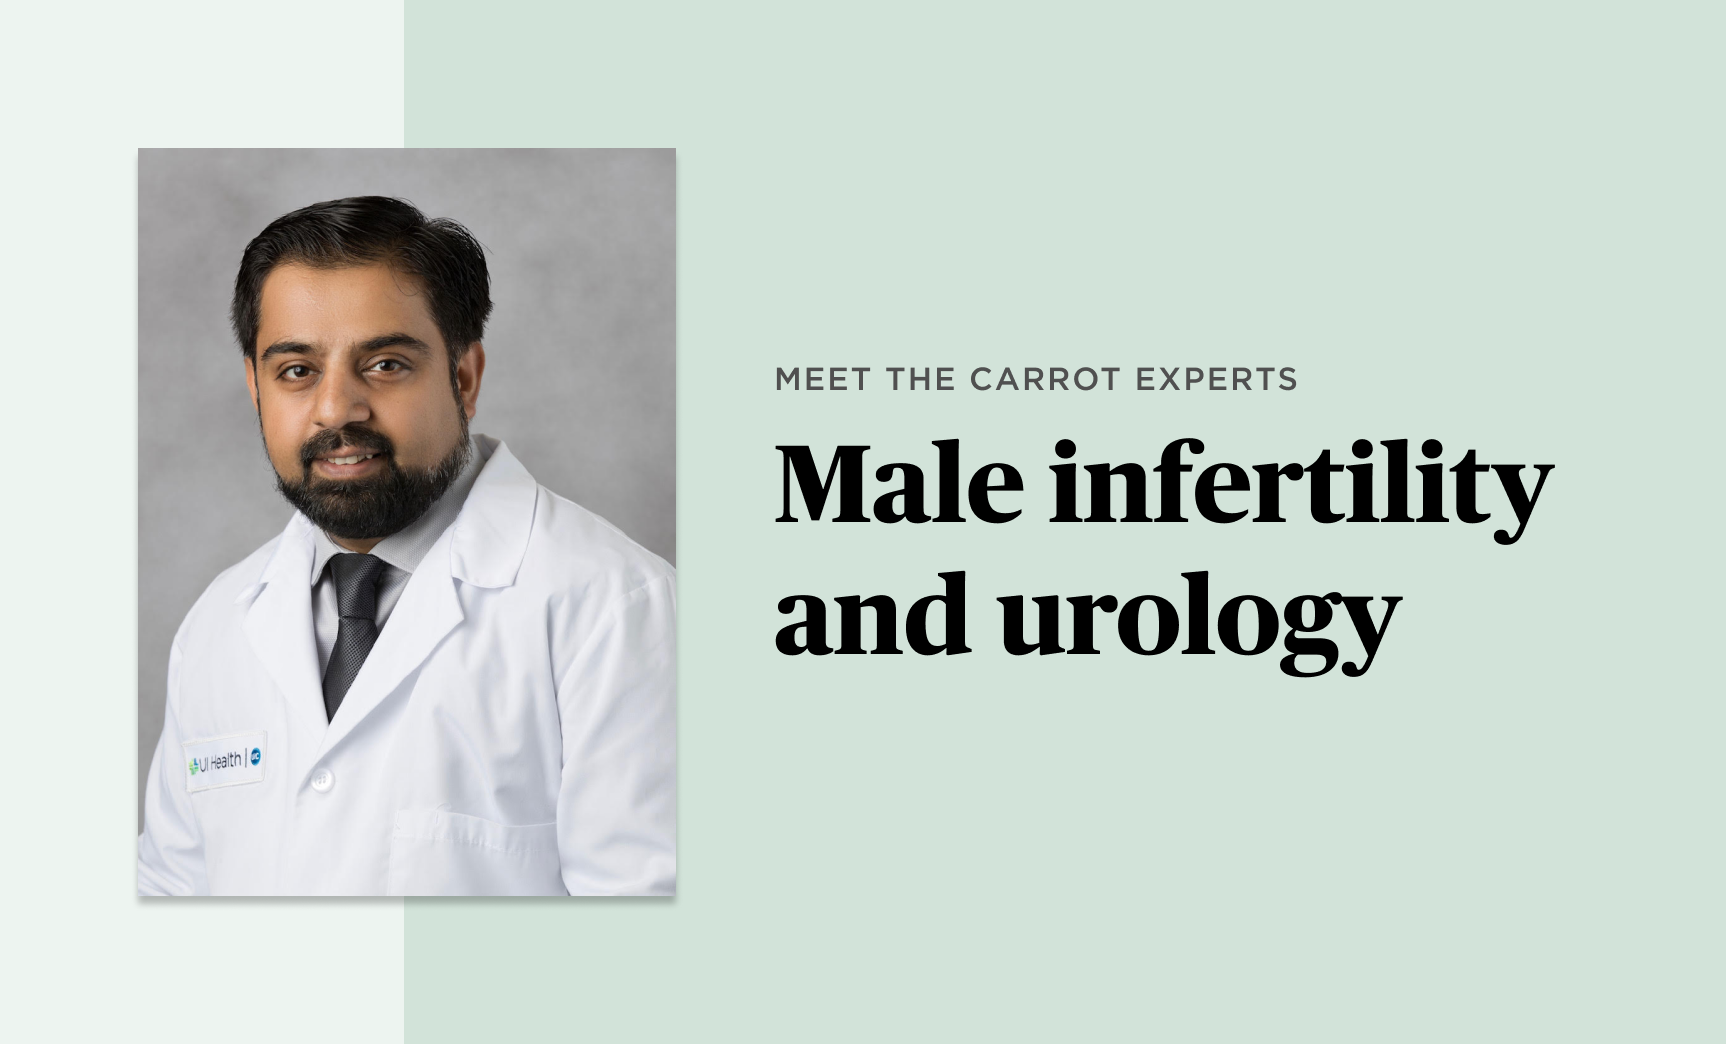 Meet the Carrot Experts: Muhammad Asim Khan, MD